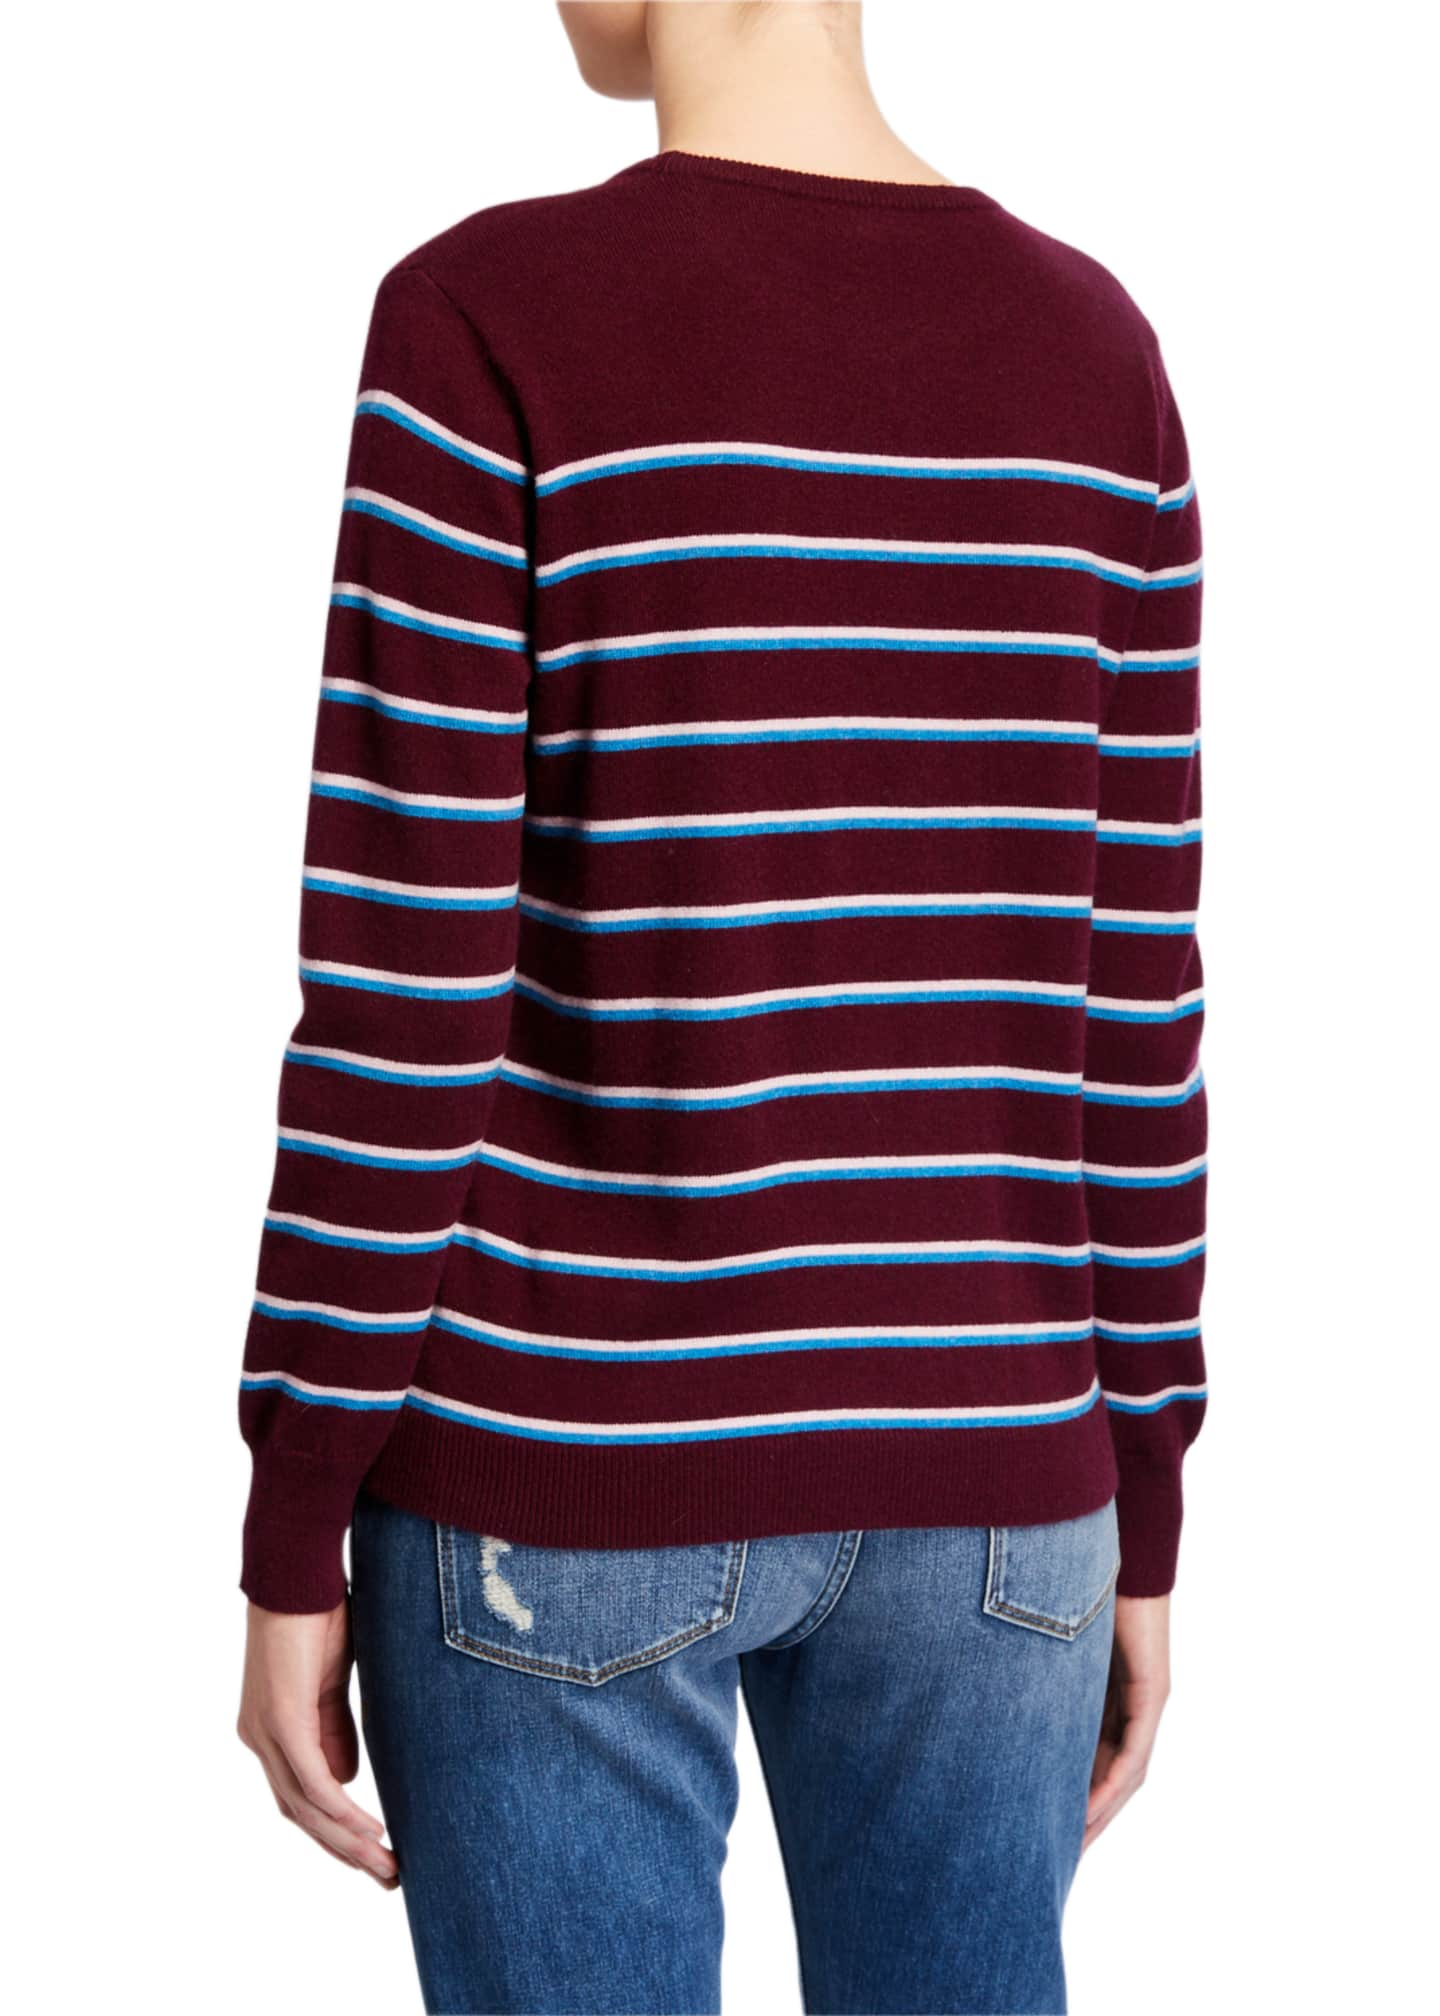 Image 2 of 4: The Samara Striped Crewneck Sweater